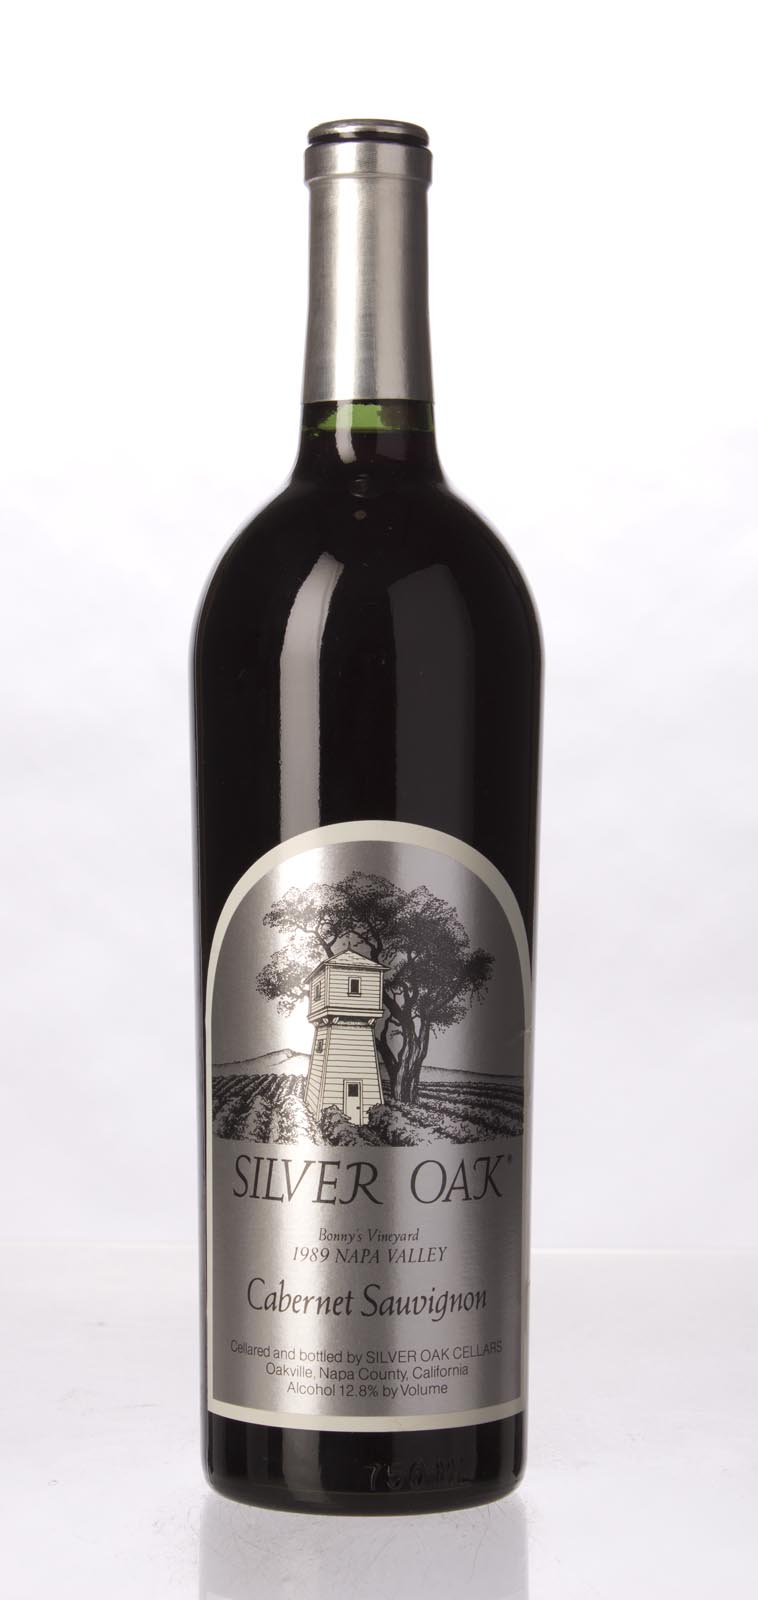 Silver Oak Cabernet Sauvignon Bonny`s Vineyard 1989, 750mL () from The BPW - Merchants of rare and fine wines.